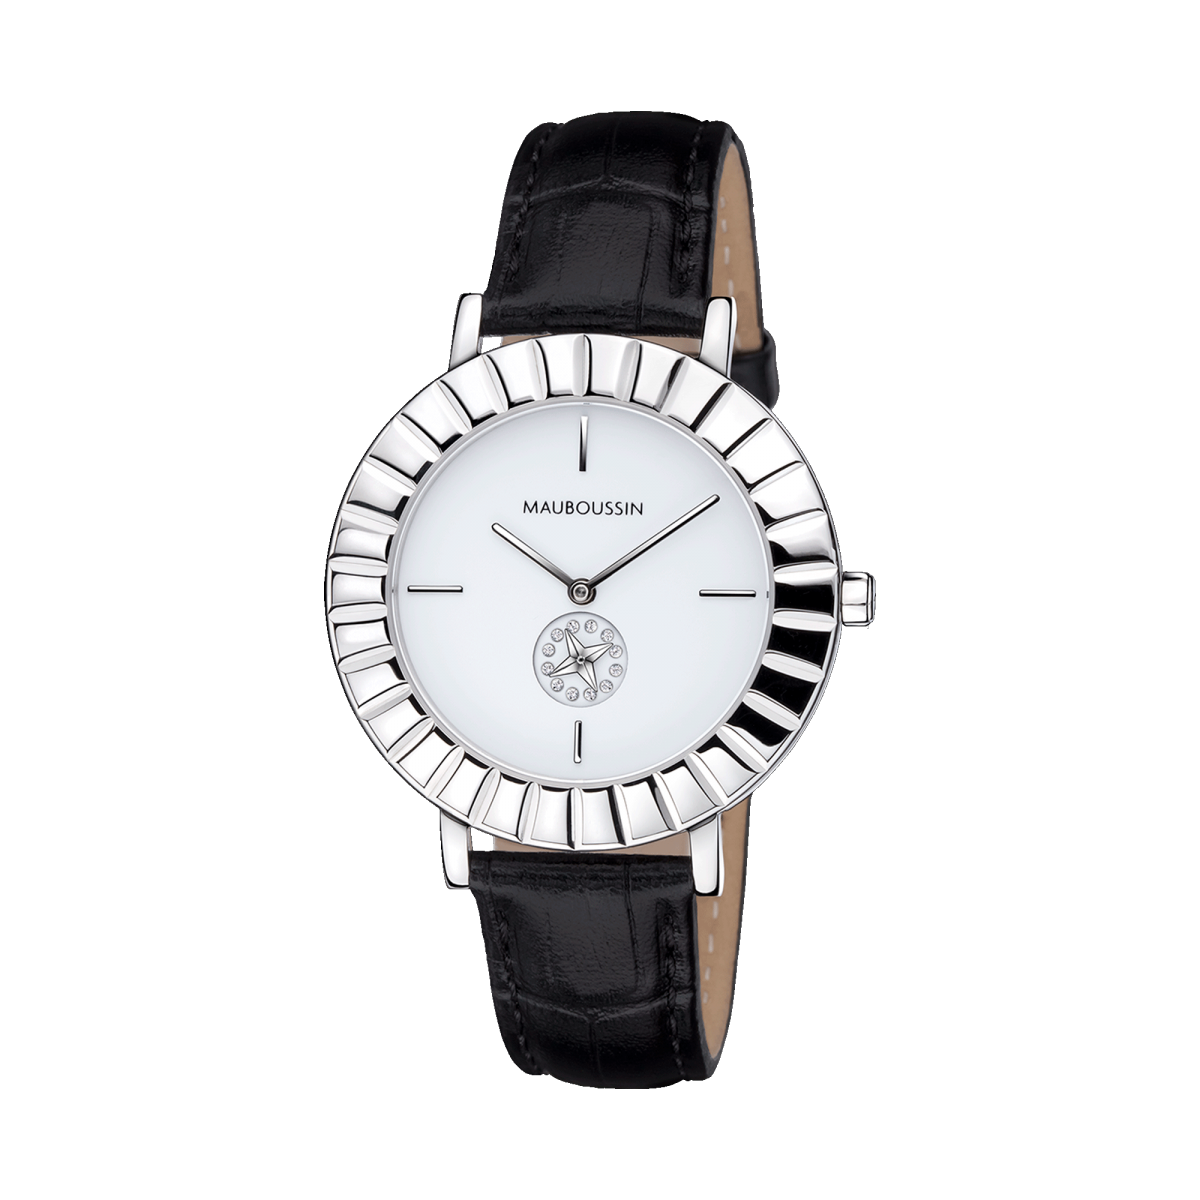 Etoile du Temps watch, silver dial, small